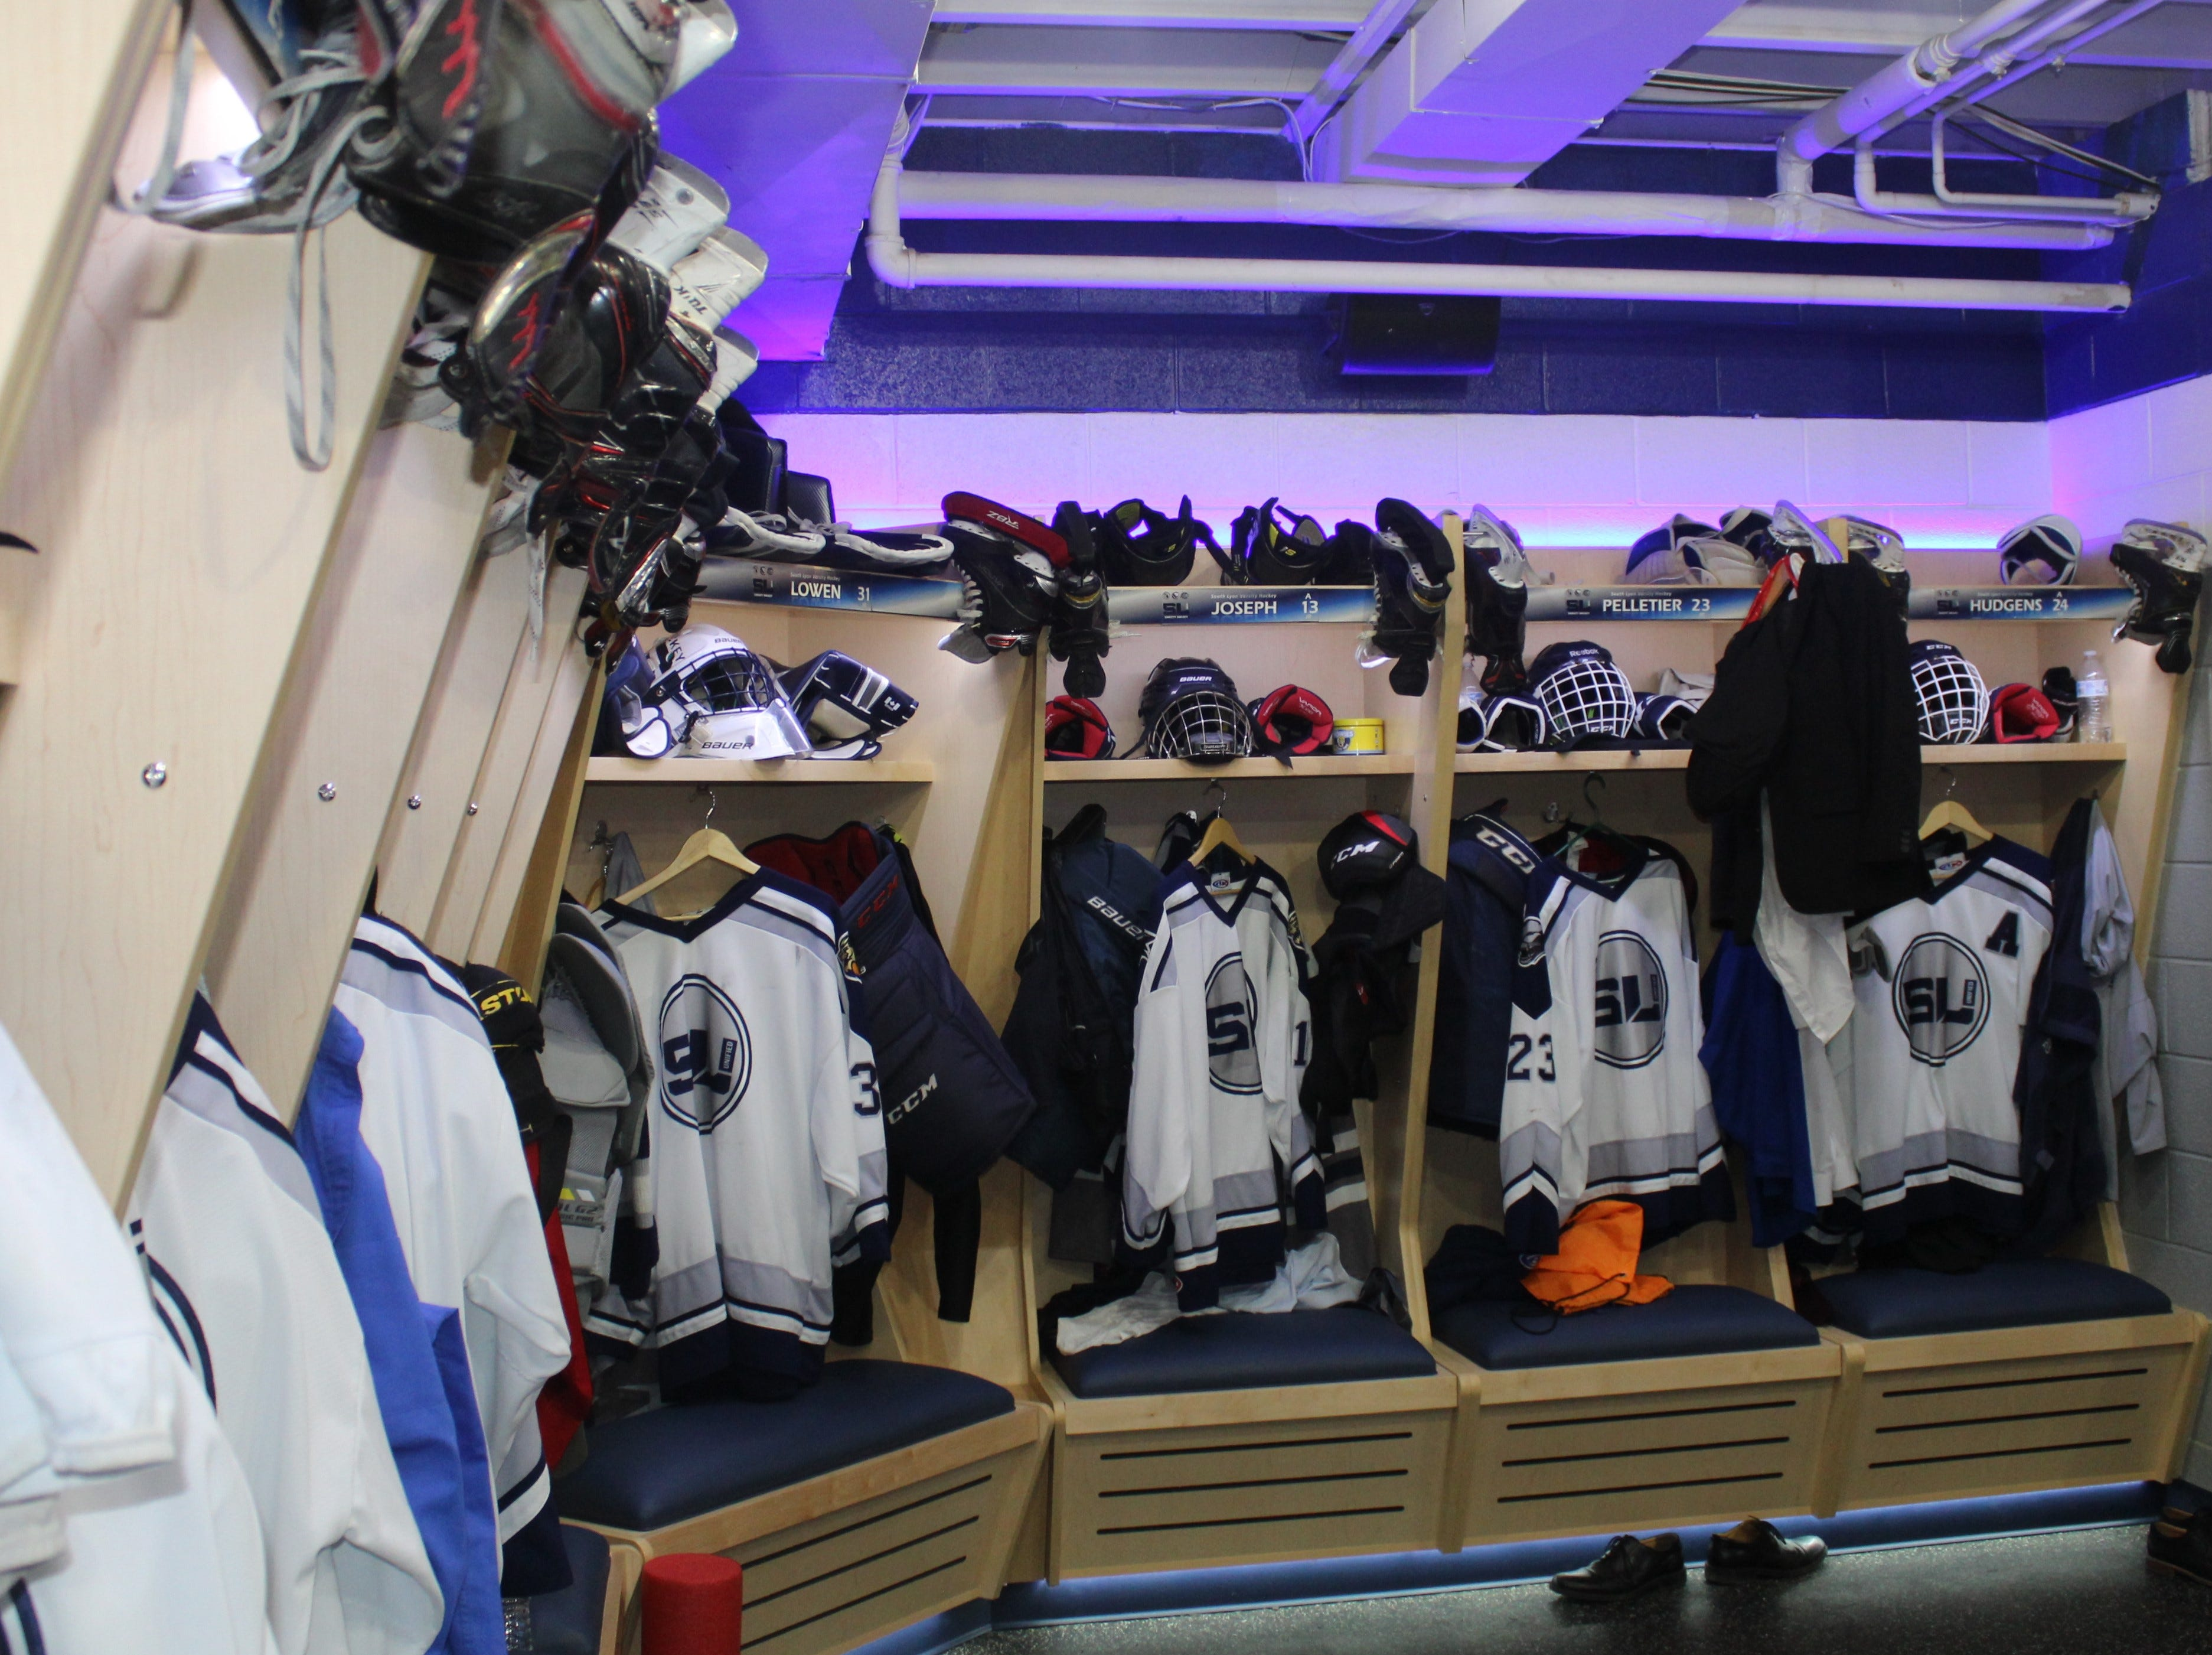 South Lyon Unified's spacious new locker room was financed primarily by corporate donations and team fund raisers.